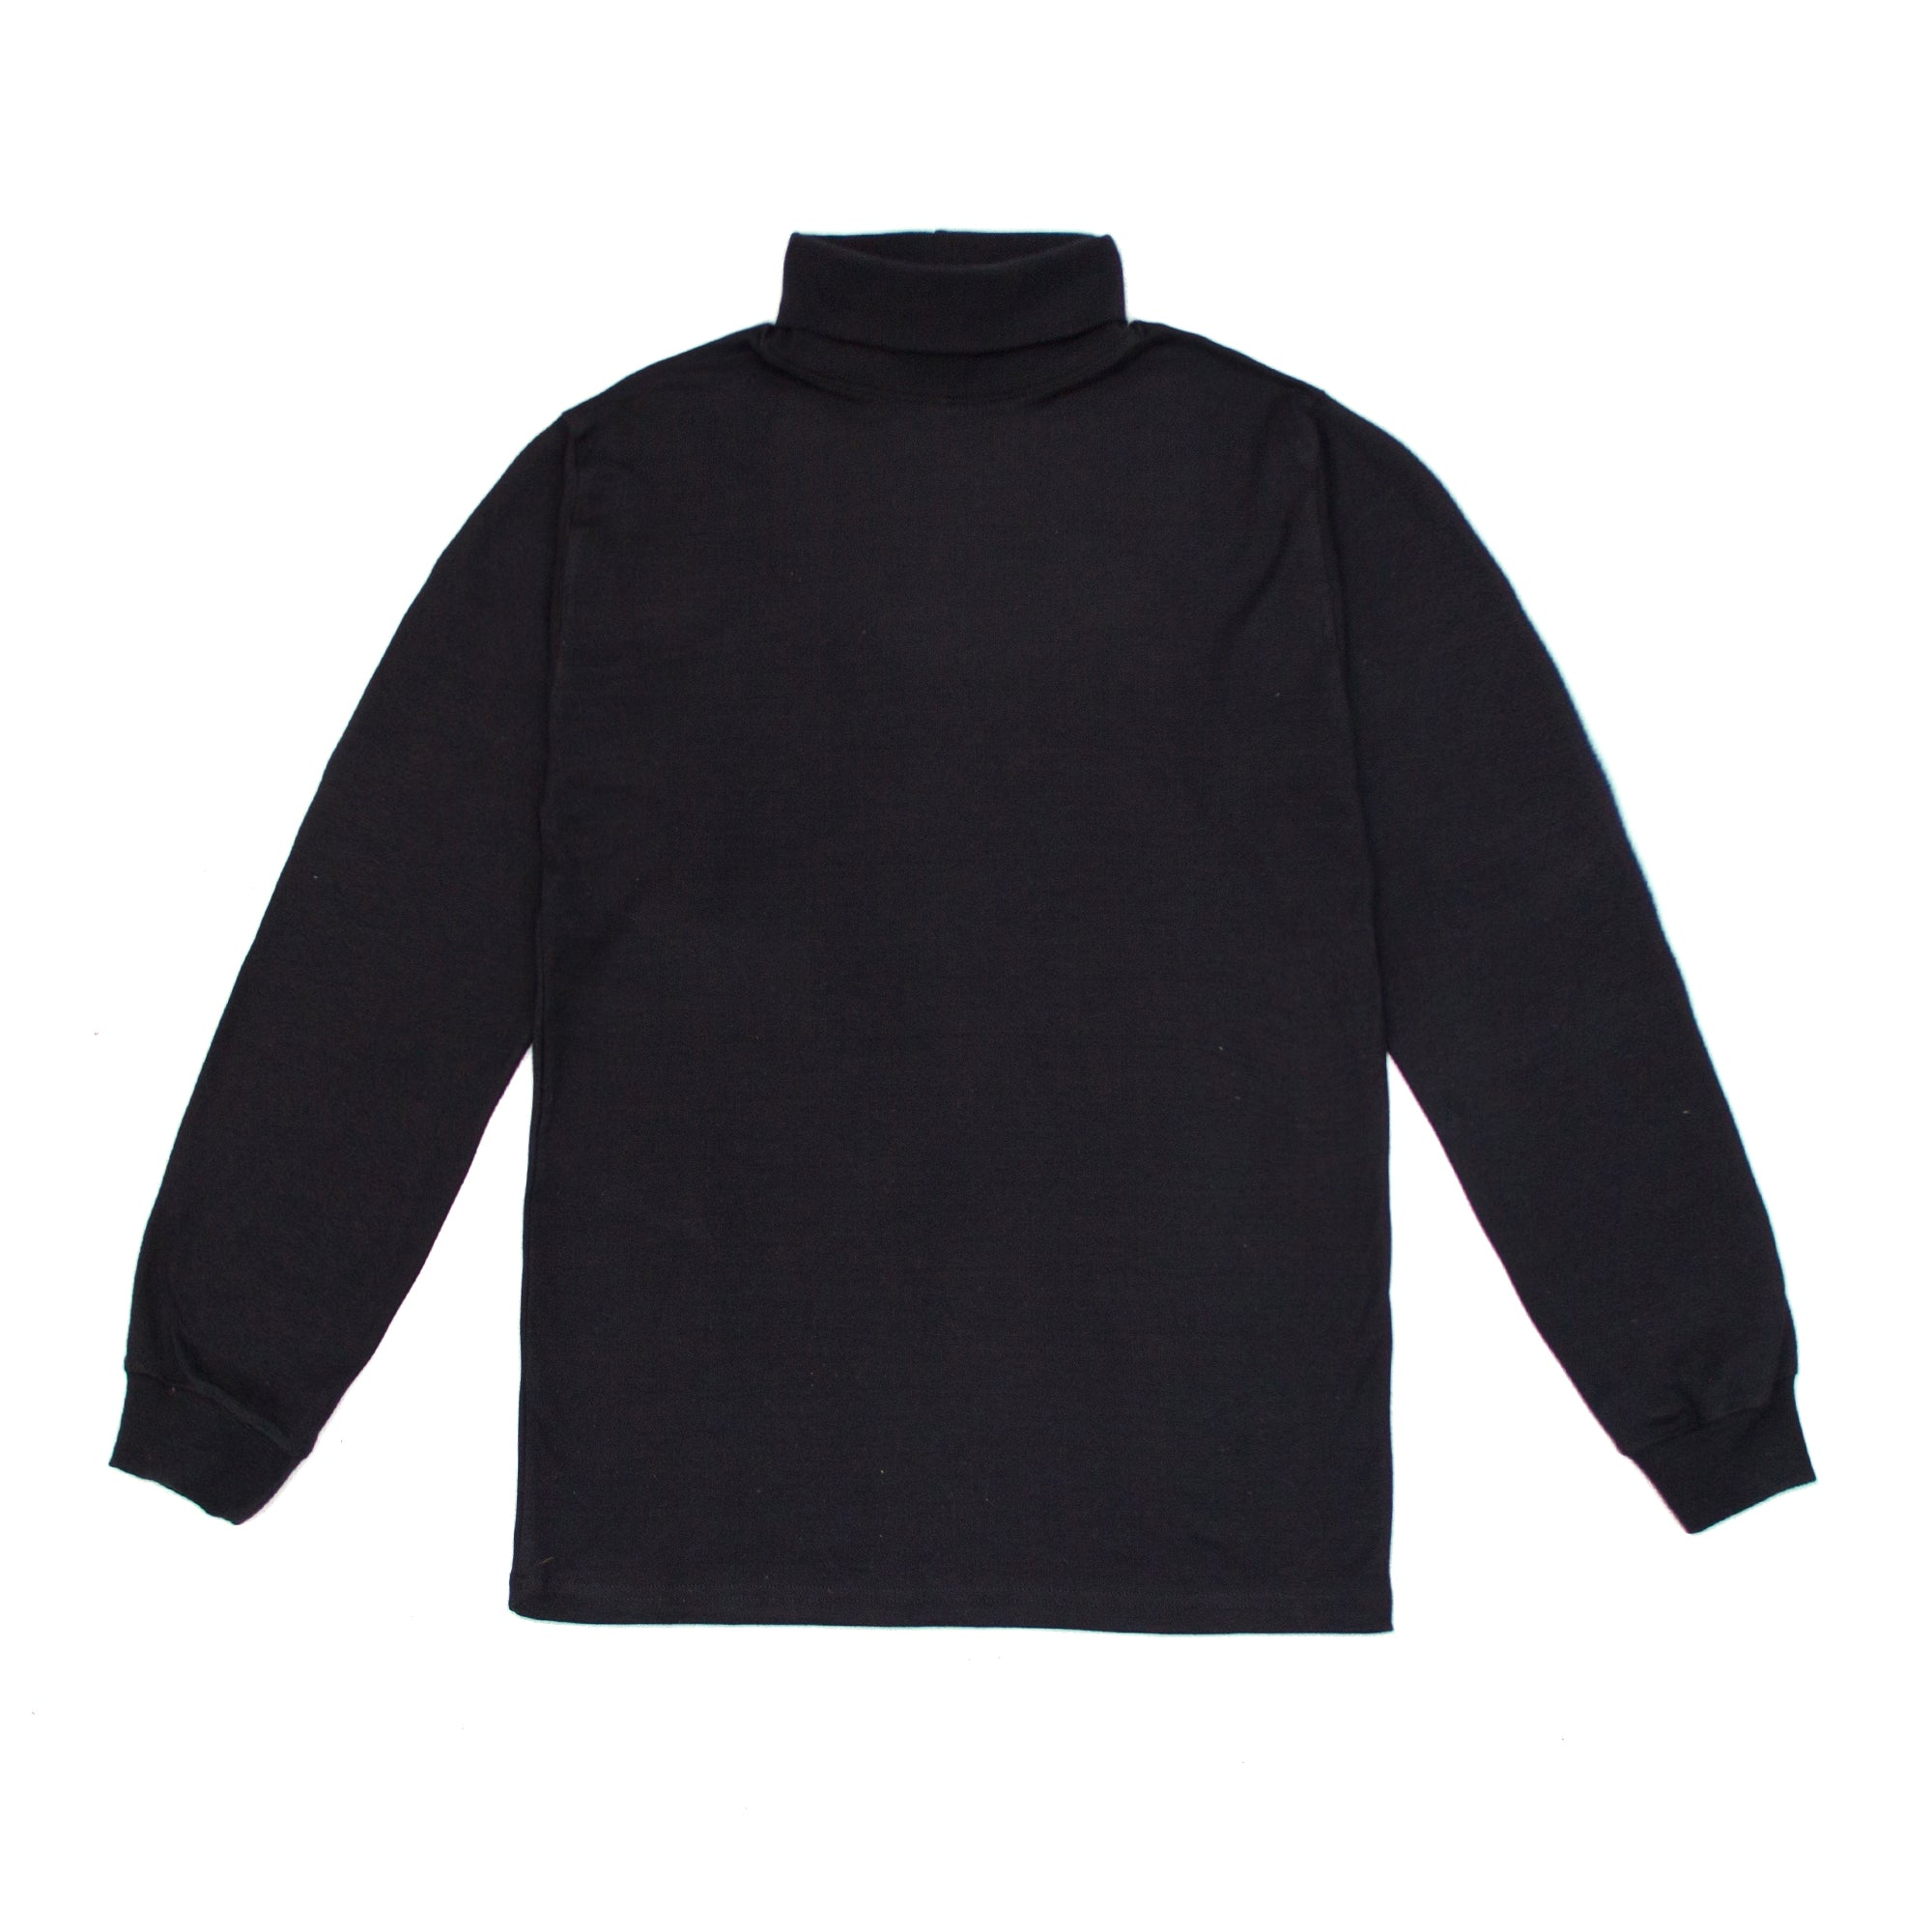 P+F & SW Turtleneck - Turtleneck - Saintwoods